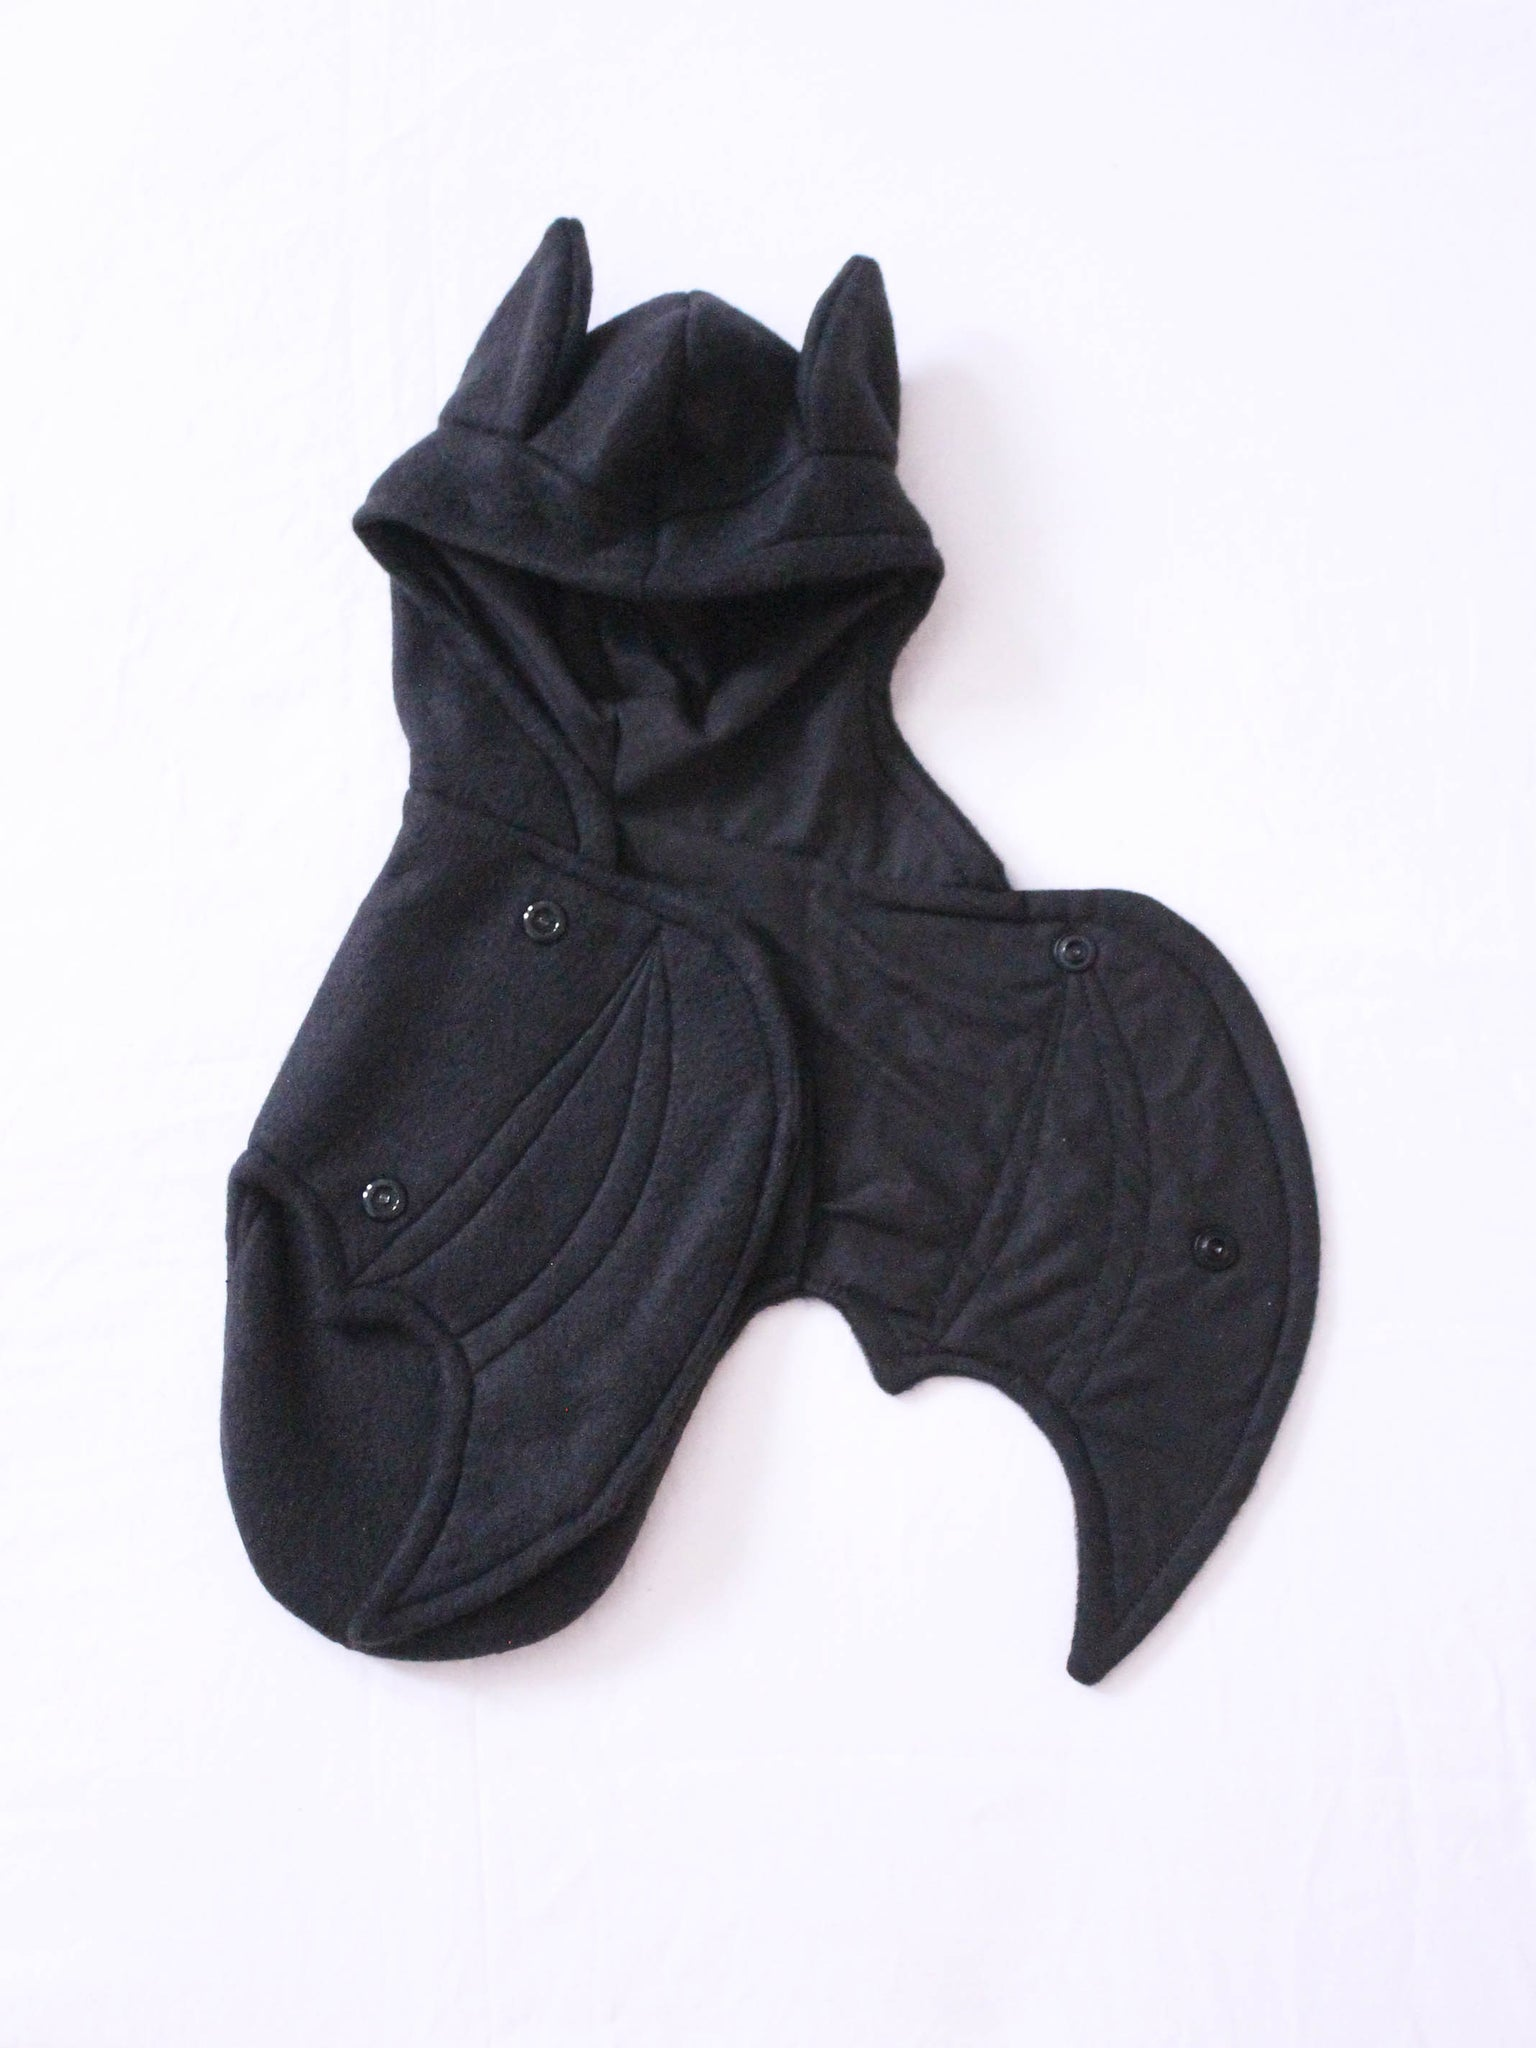 Blythe doll Solid Black bat wrap Ready to Ship - Monstro Designs